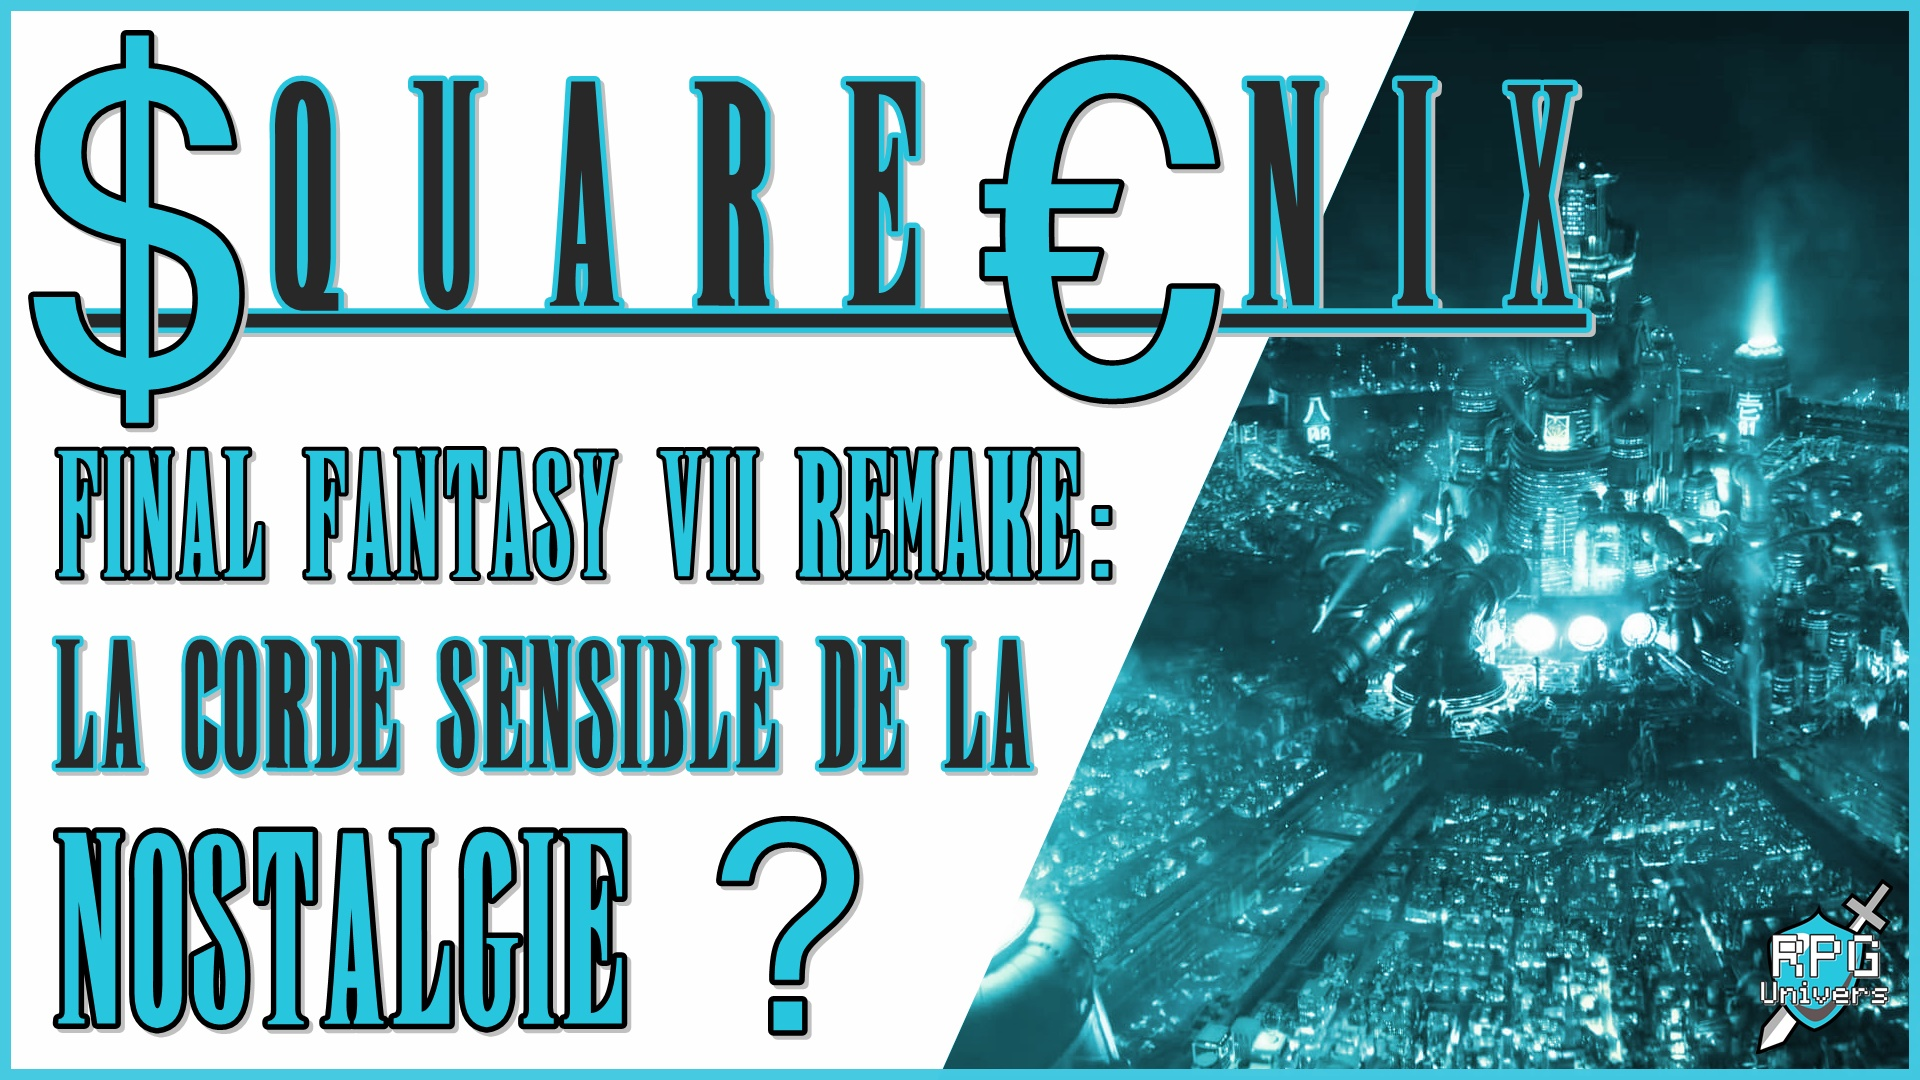 Final Fantasy 7 Remake: la corde sensible de la Nostalgie?